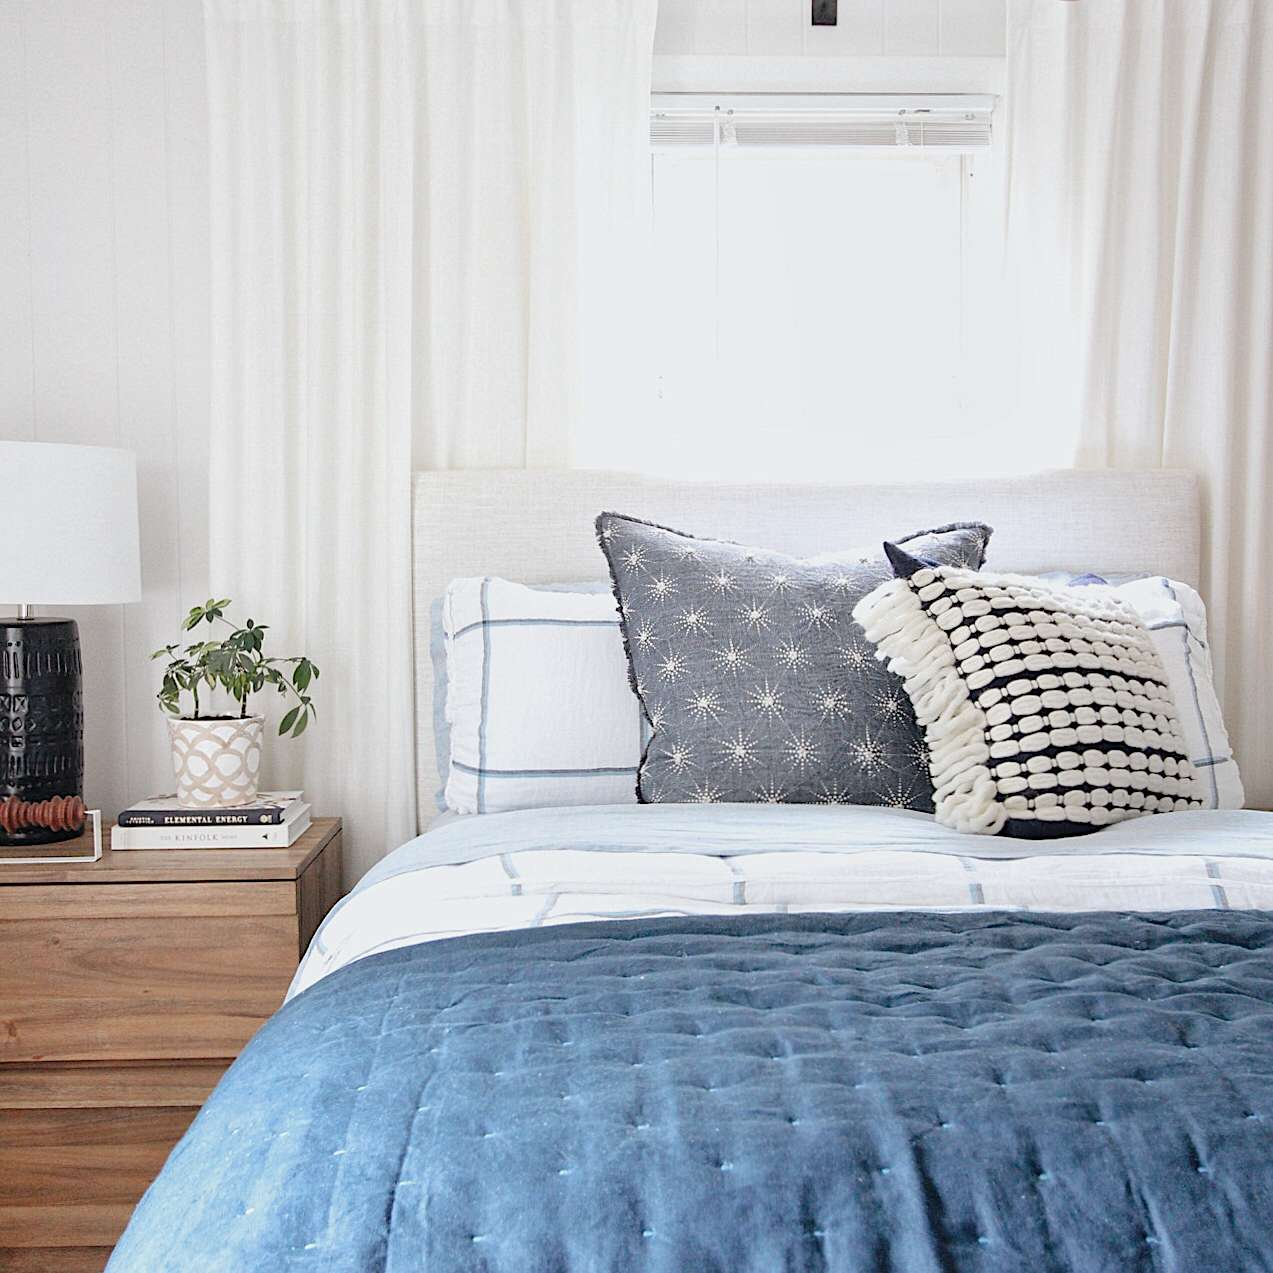 Bedroom with blue bedding